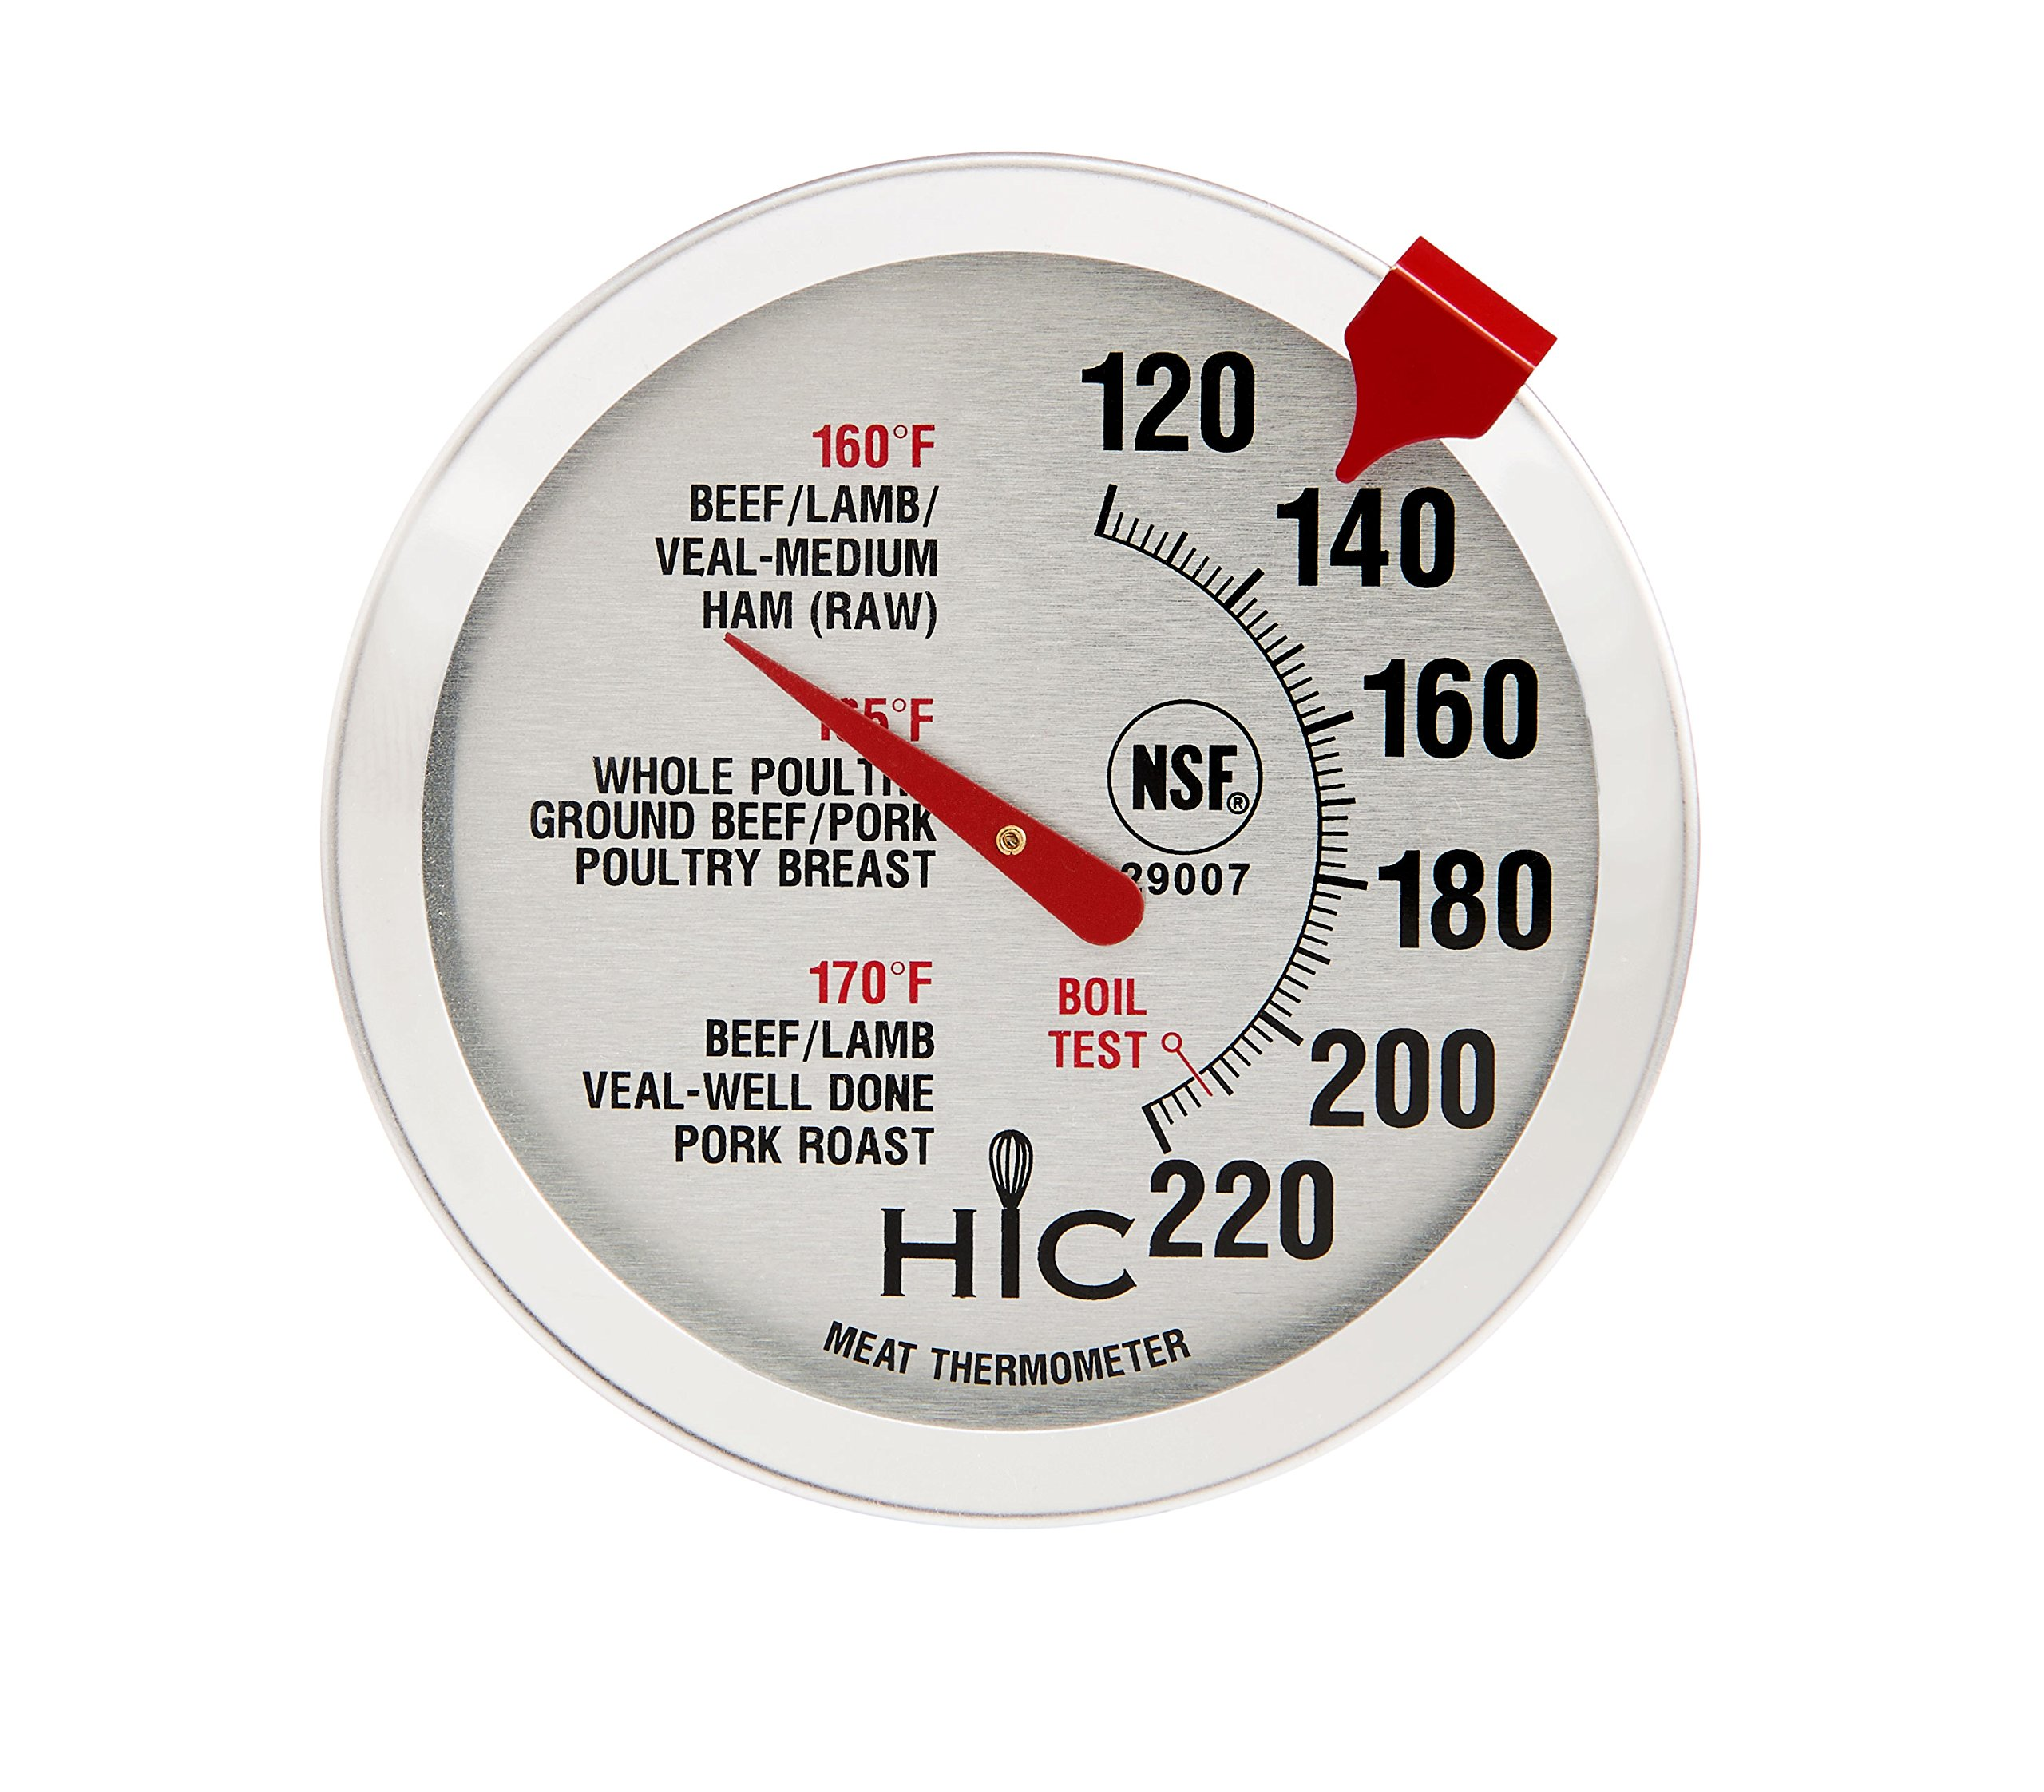 HIC Roasting Meat Thermometer 29007, Oven Safe, Large 2-Inch Easy-Read Face, Stainless Steel Stem and Housing